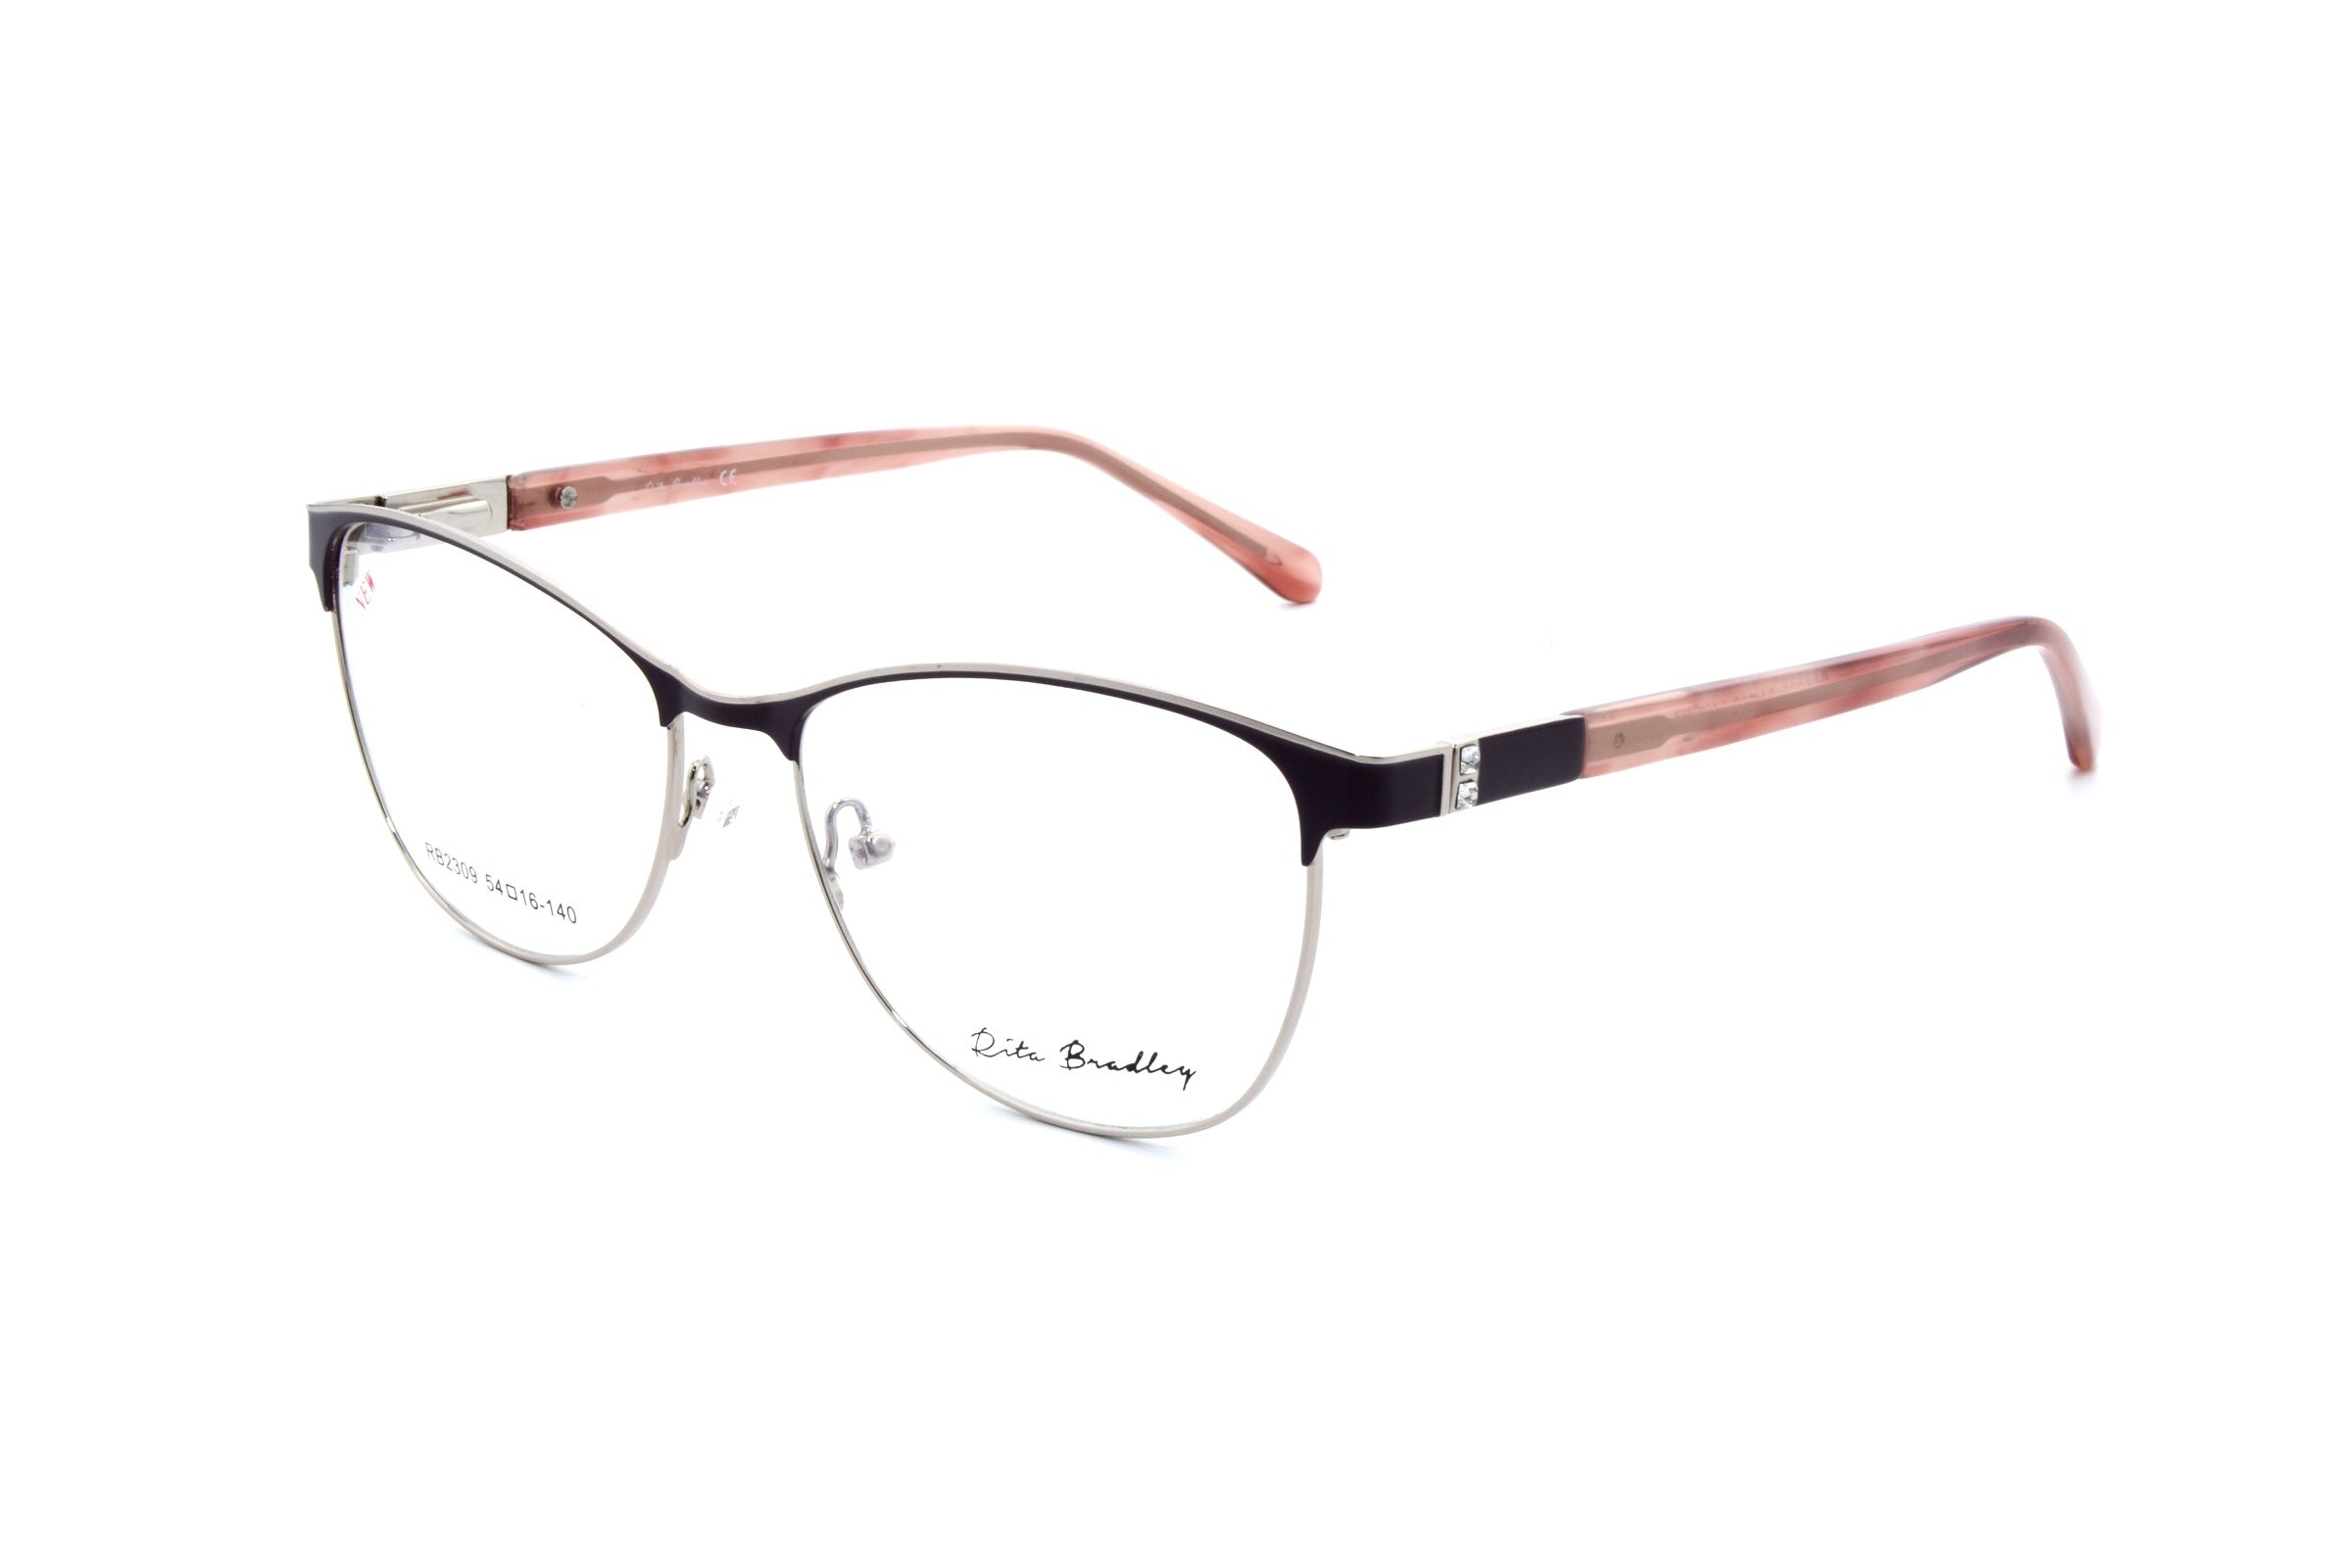 Rita Bradley eyewear 2309, C7 - Optics Trading